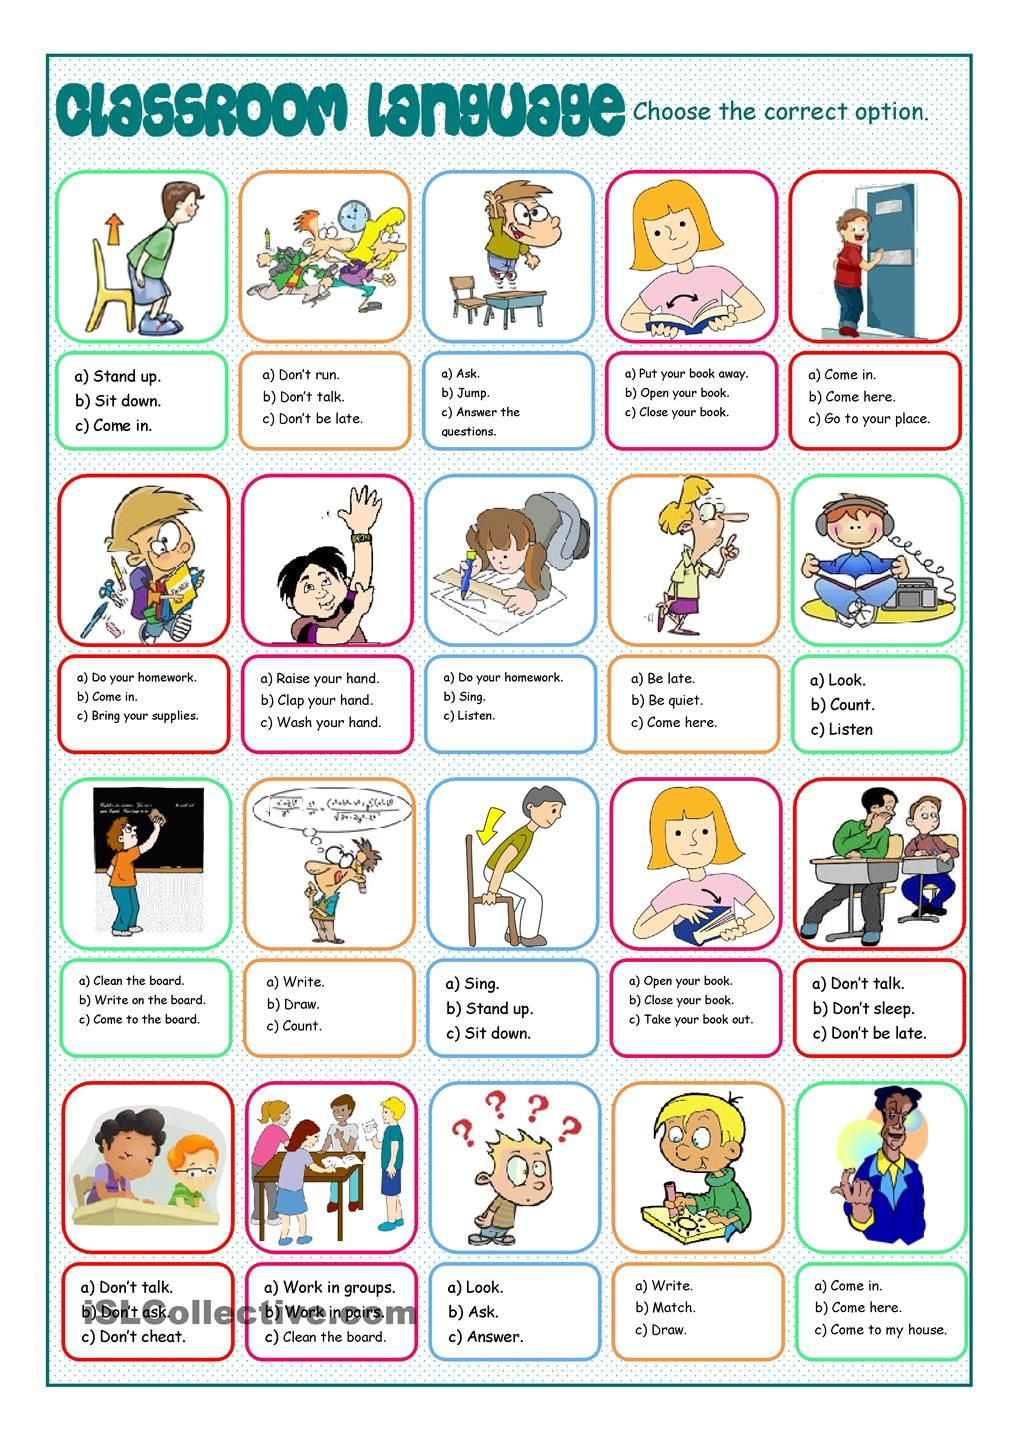 Classroom Ideas And Activities : Classroom language multiple choice resource for english